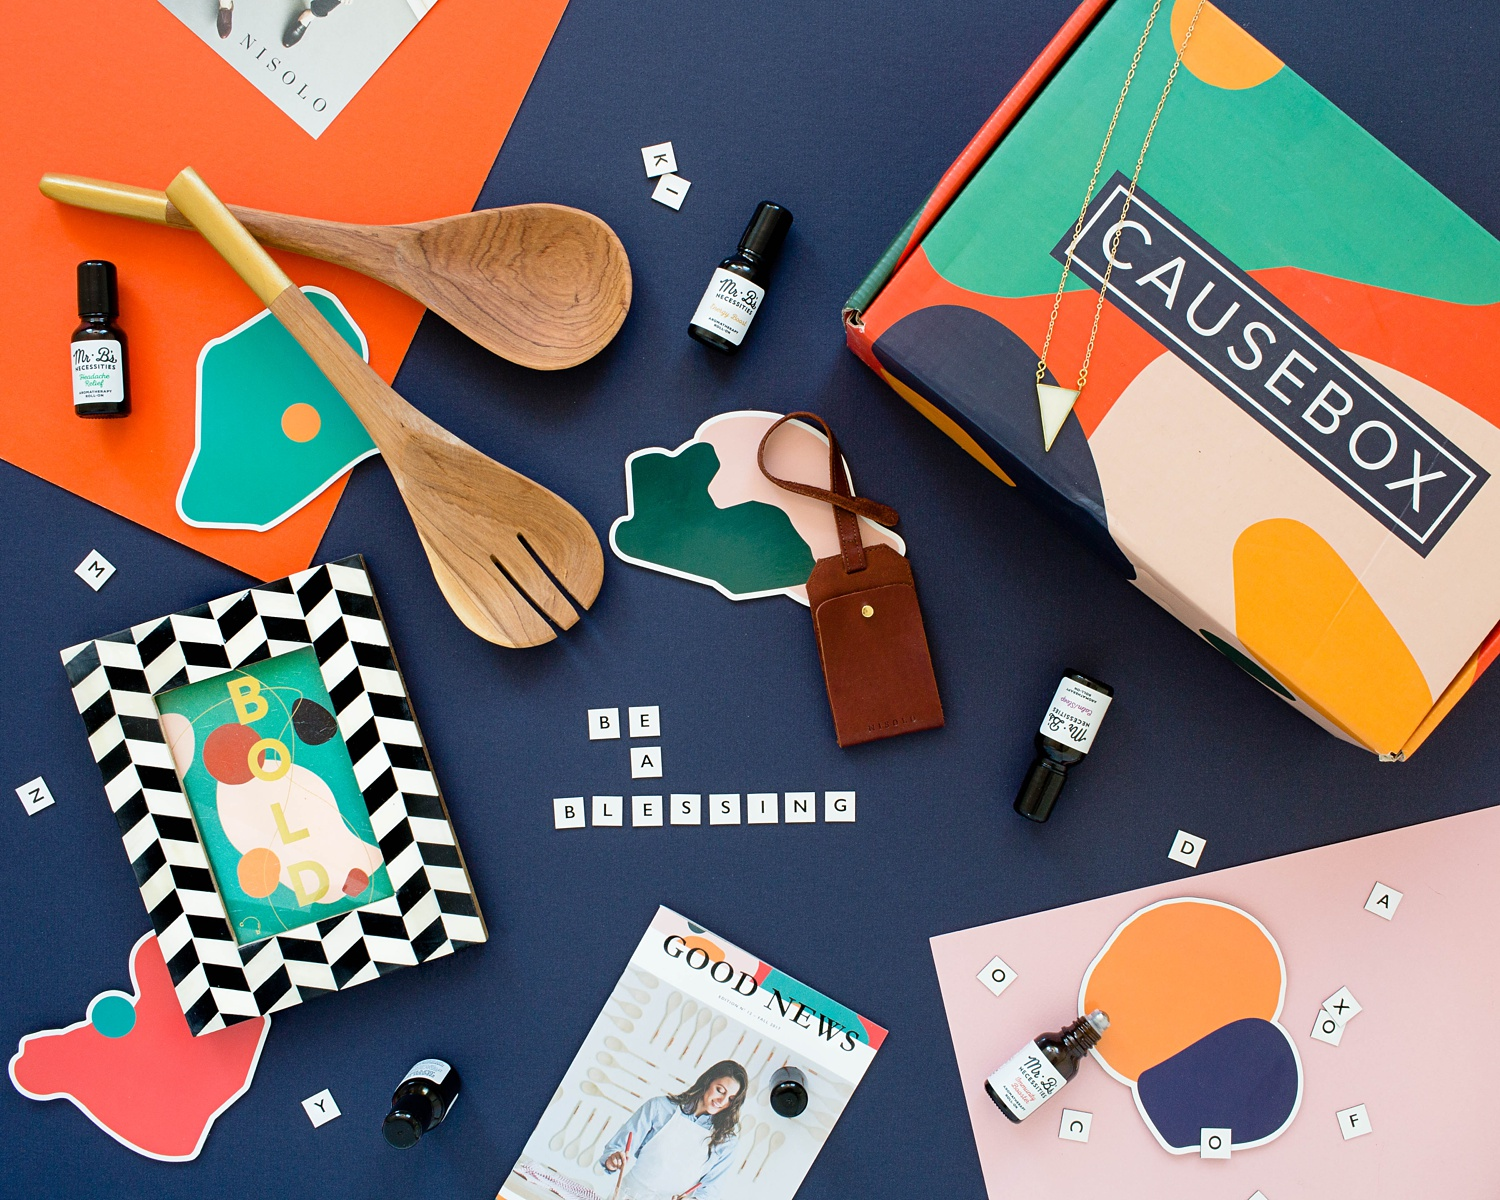 Flat lay image by Kimberly Murray of Fall CAUSEBOX featuring socially conscious companies.